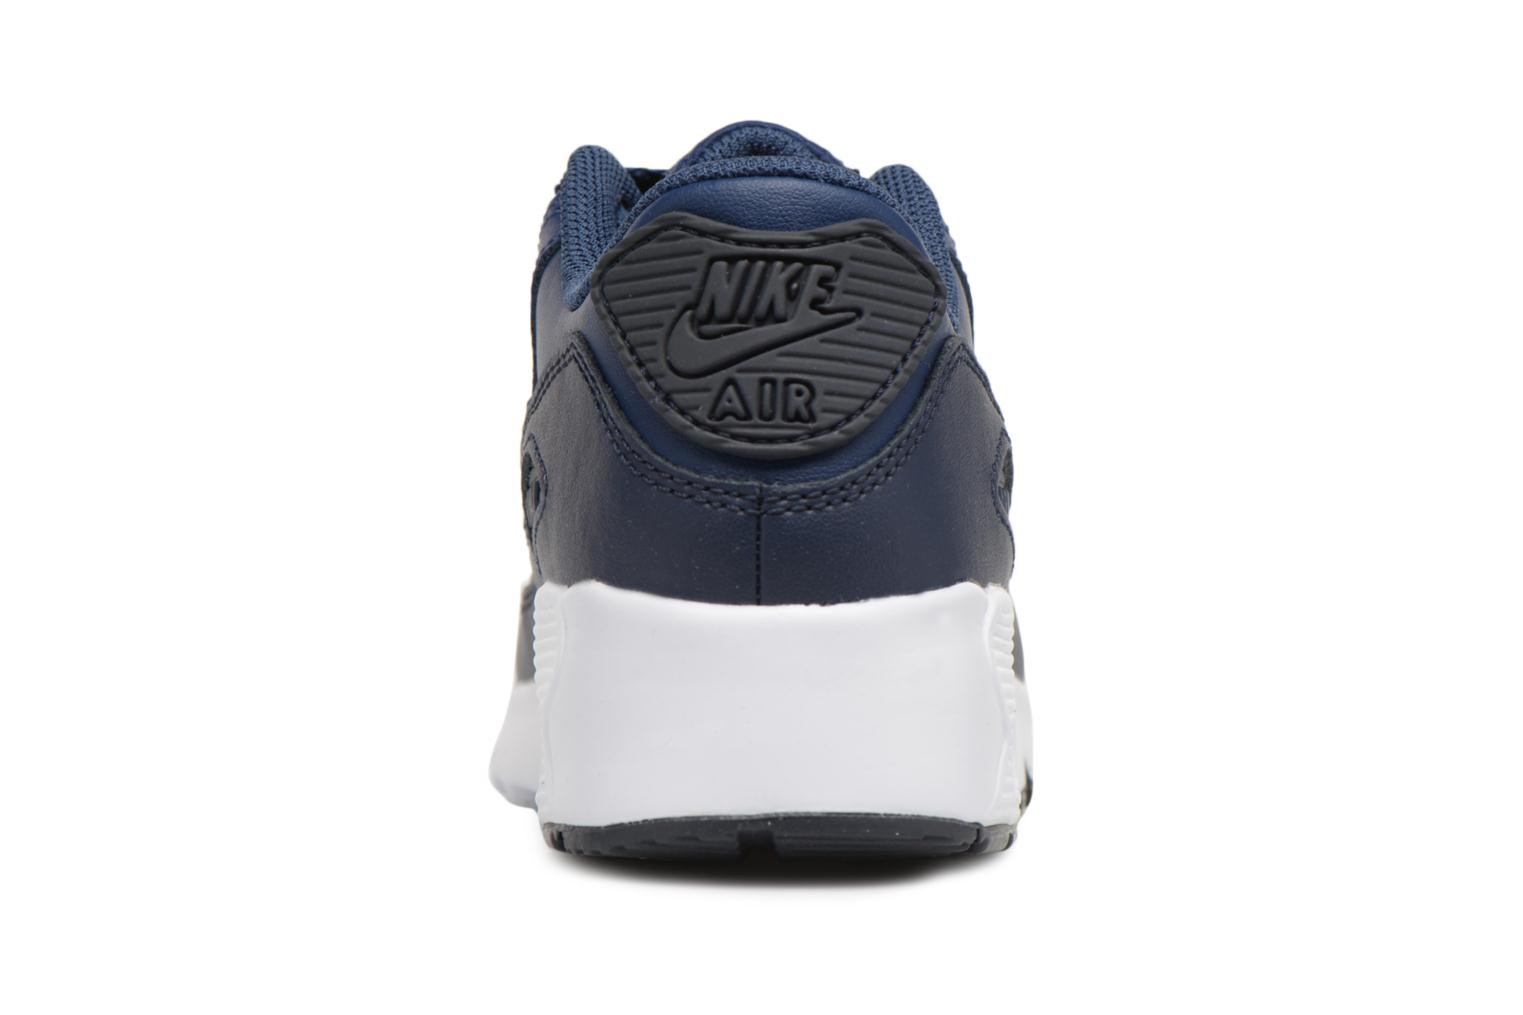 Nike Air Max 90 Ltr (Ps) Obsidian/Navy-White